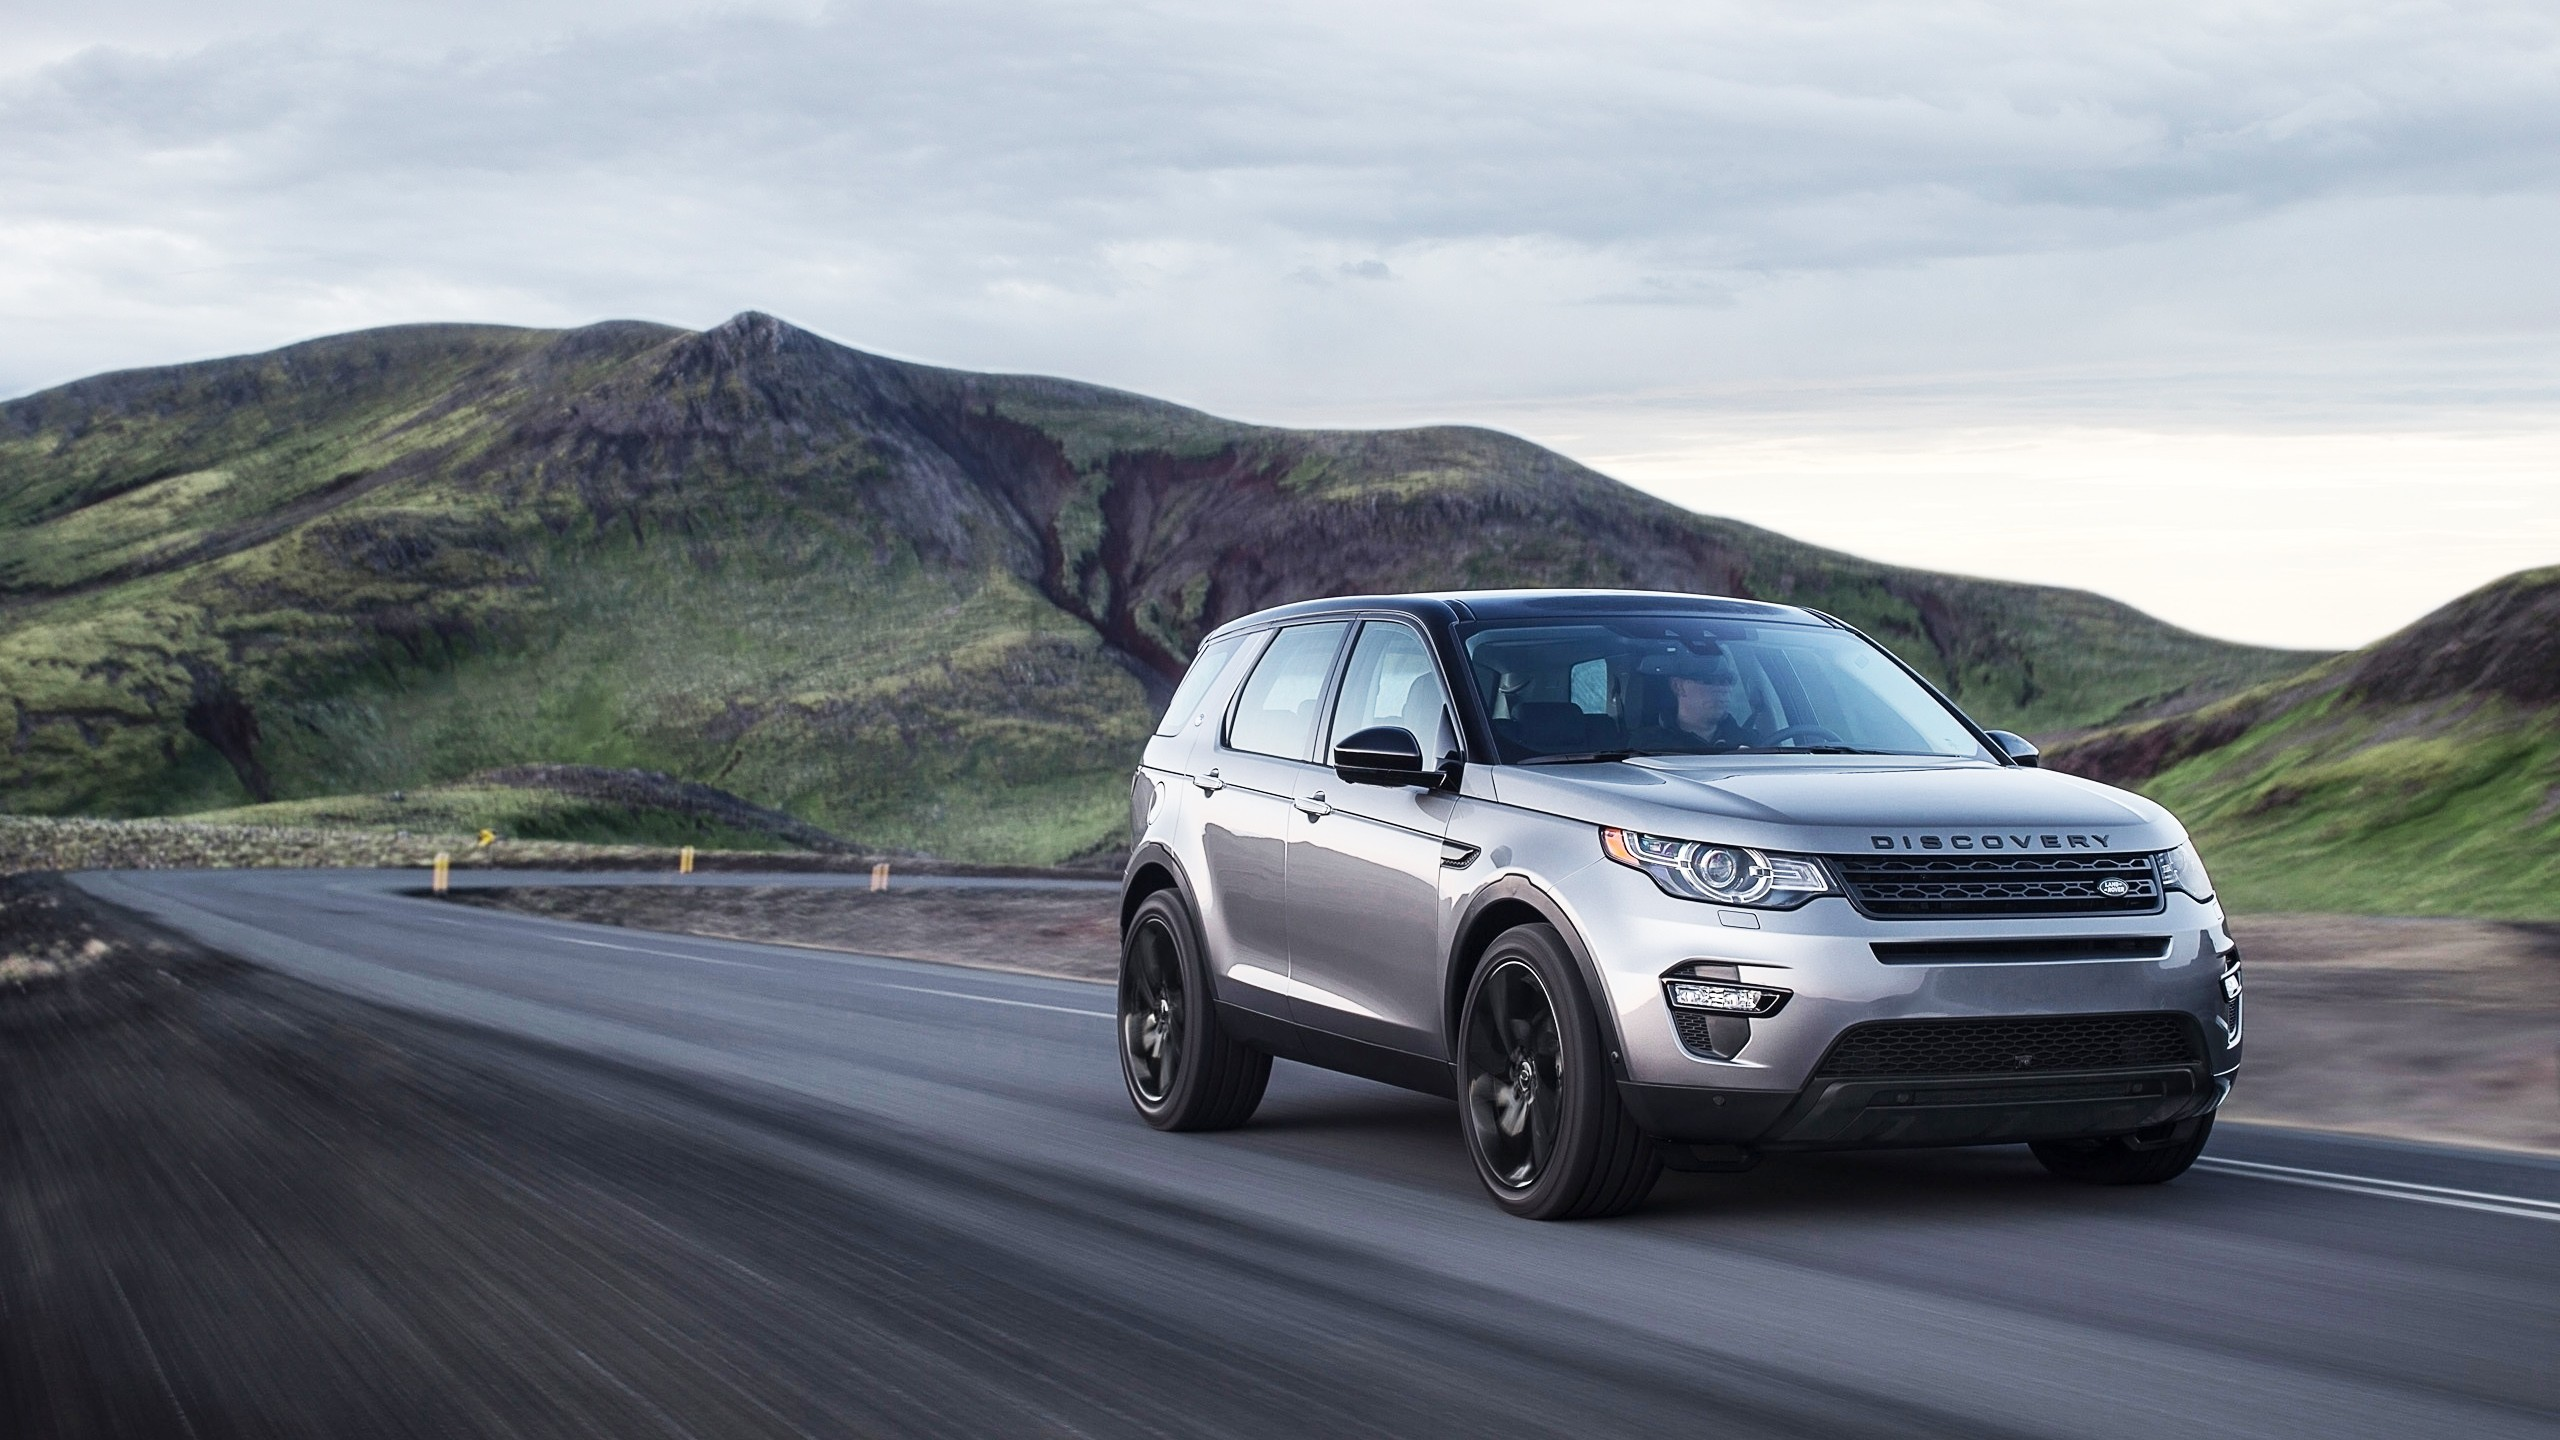 Range Rover Sport >> 2015 Land Rover Discovery Sport Wallpaper | HD Car ...